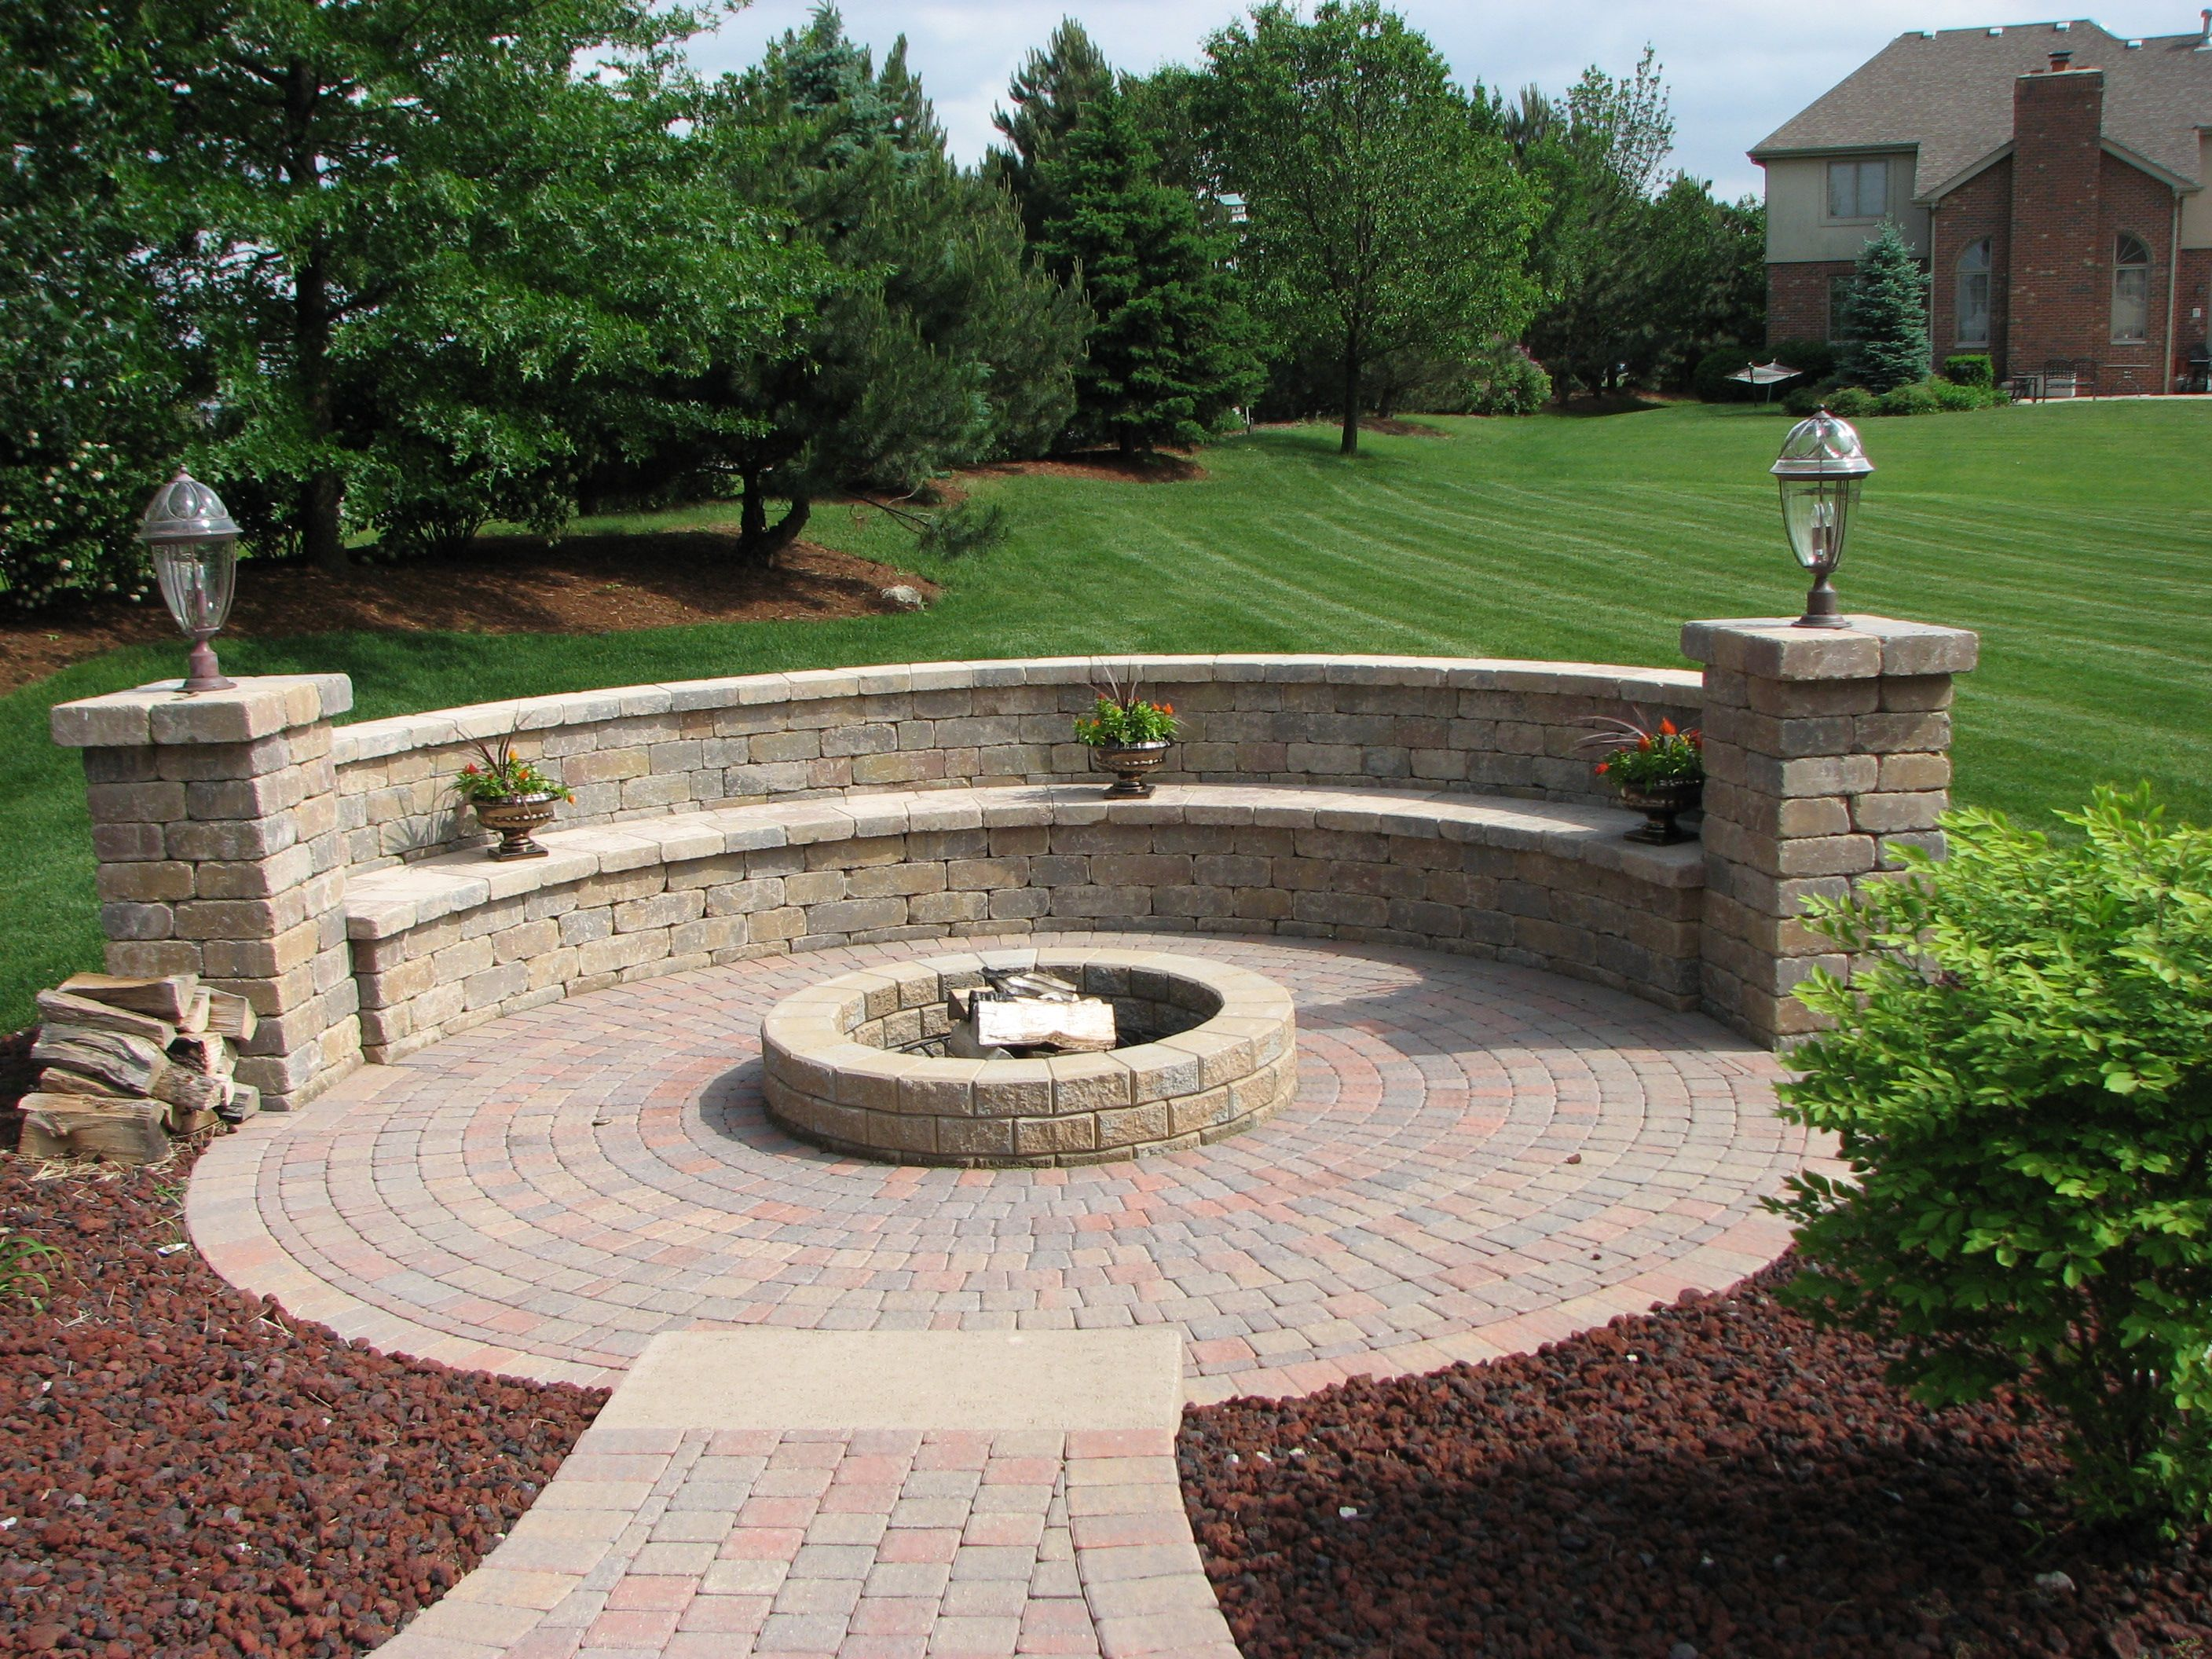 Inspiration for backyard fire pit designs round fire pit for Small stone patio ideas